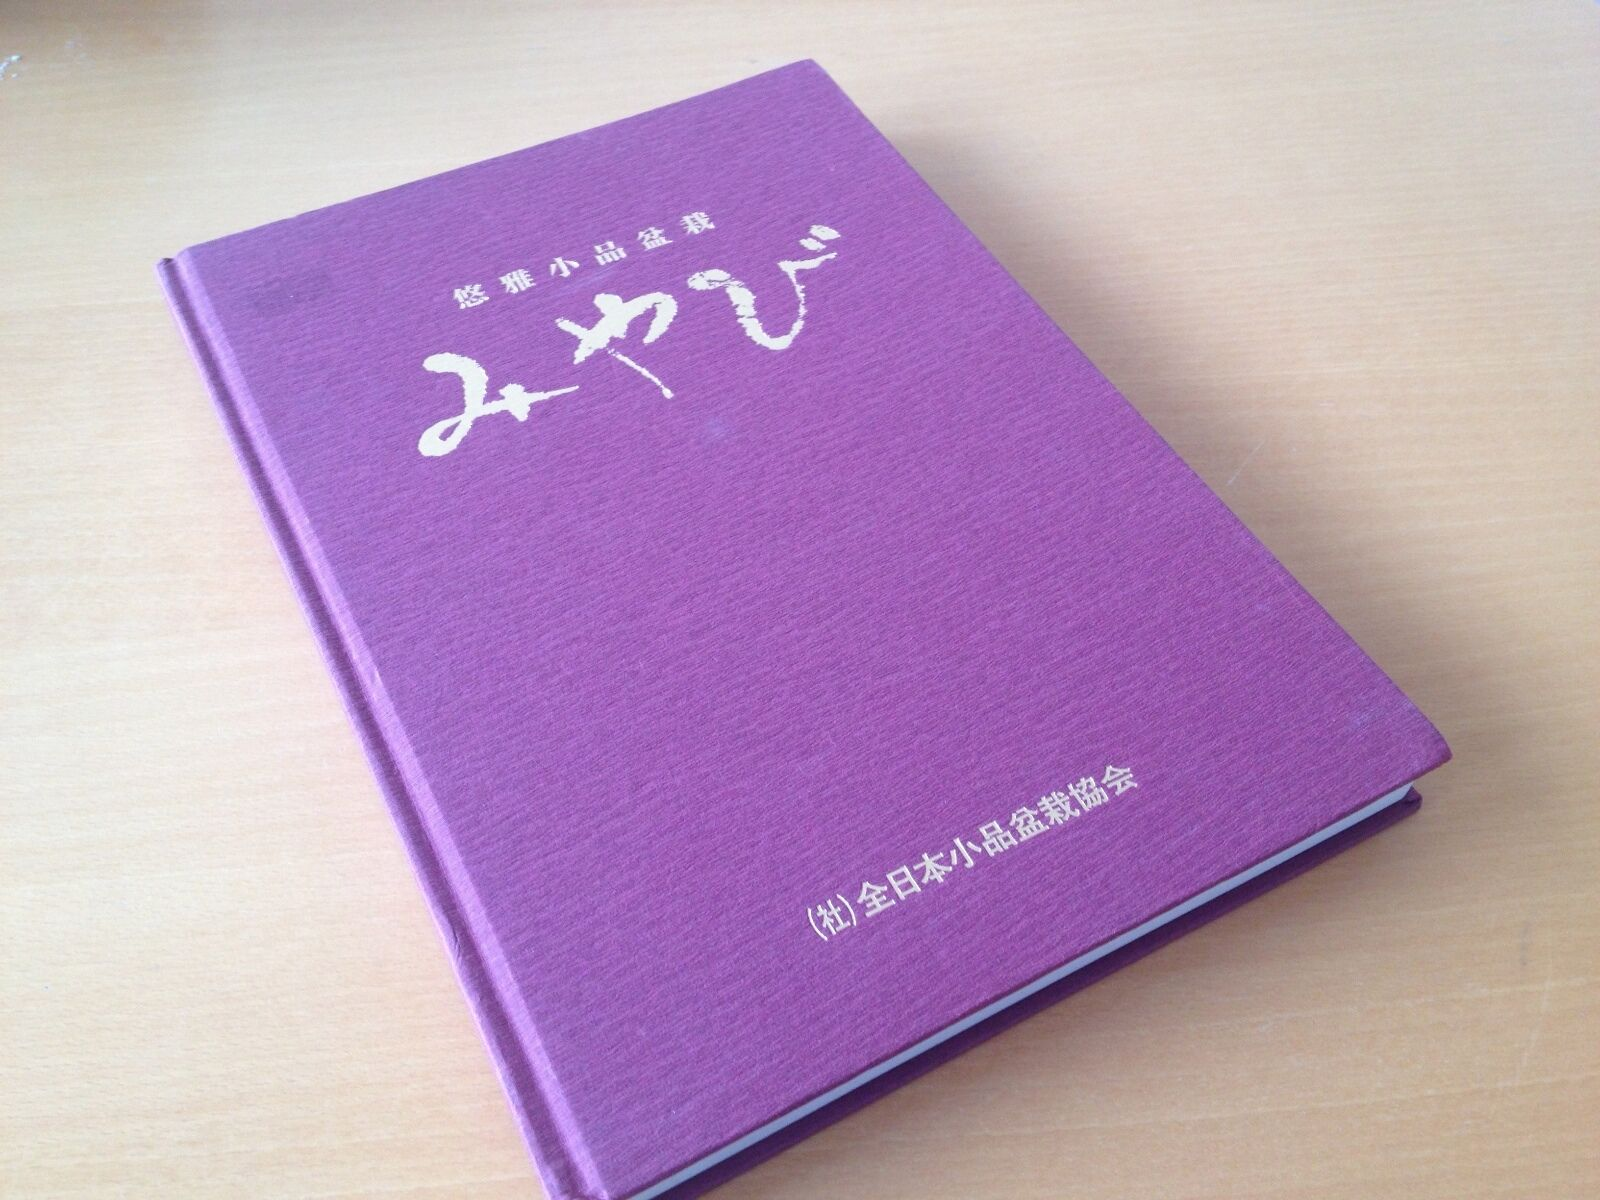 2004 Japanese BONSAI Exhibition Pictorial Record HARD BOOK   247 Pages all Farbe